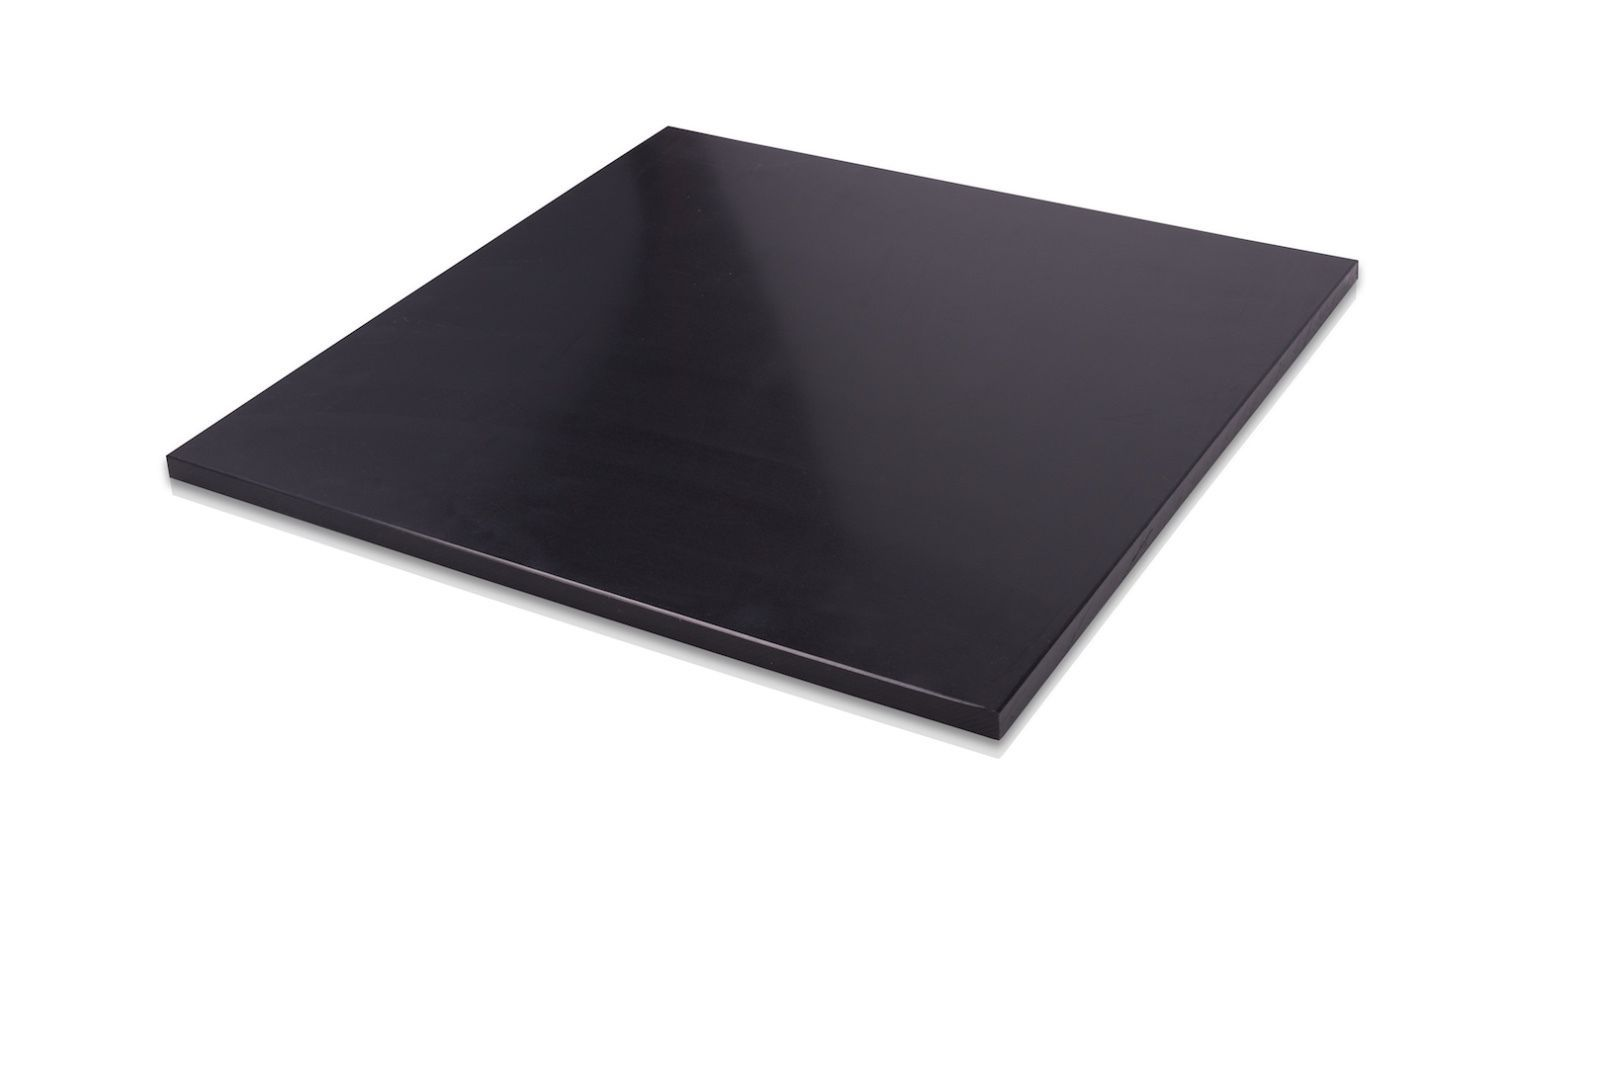 Other Crafts 75576 Hdpe Black Plastic Polyethylene Sheets 1 Thick You Pick The Size Buy It Now Only Plastic Sheets Hdpe Plastic Plastic Manufacturers